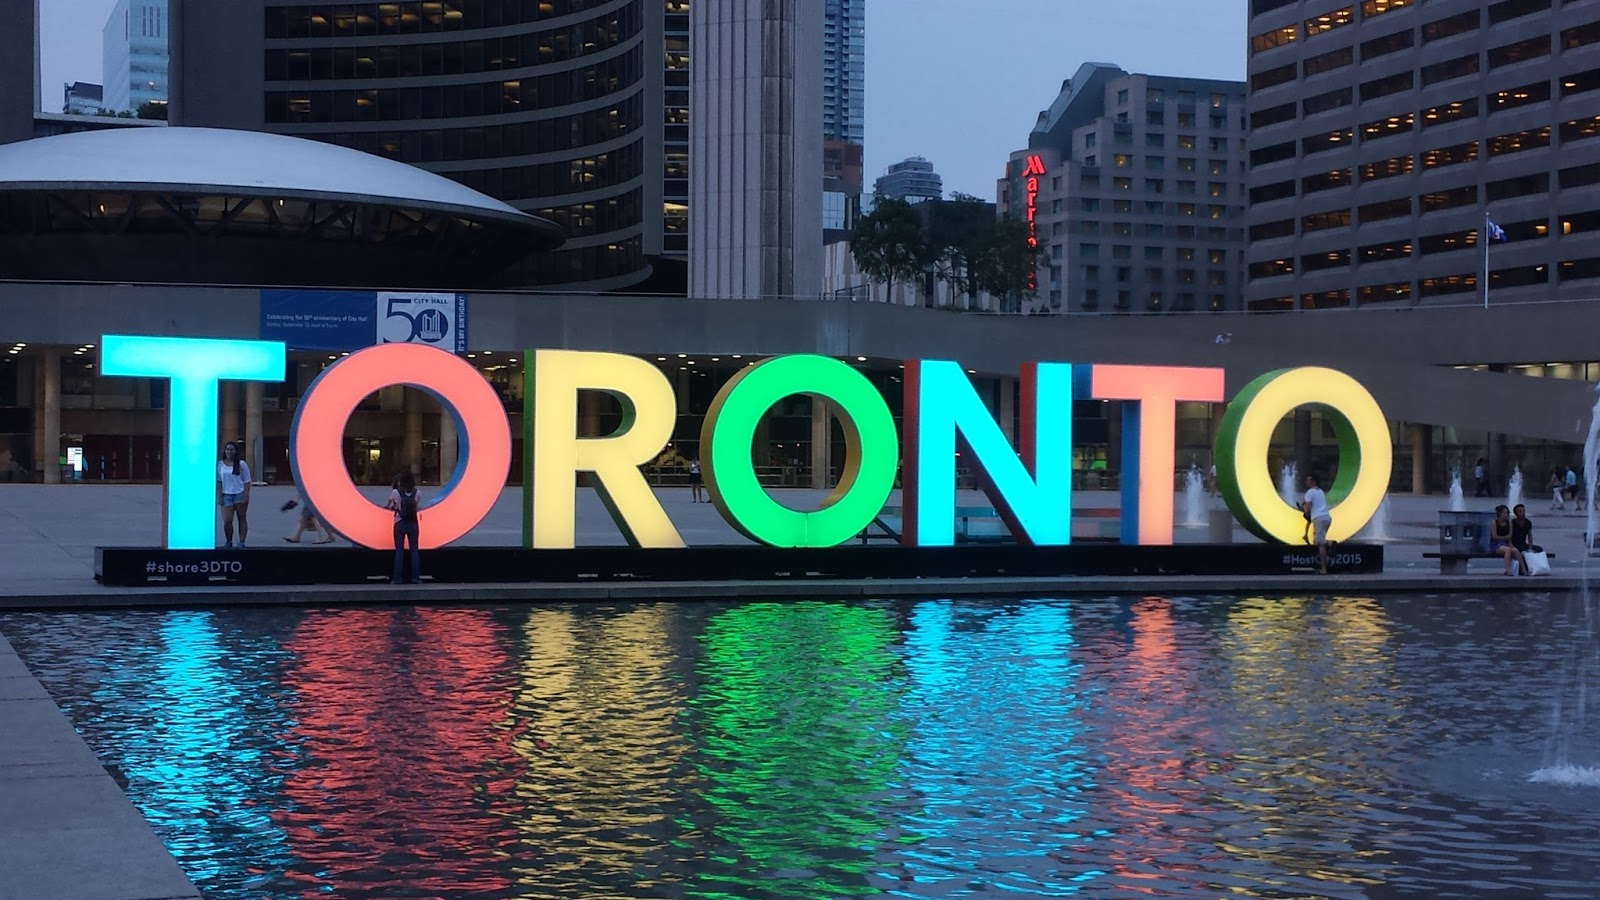 Toronto things: Toronto sign at City Hall